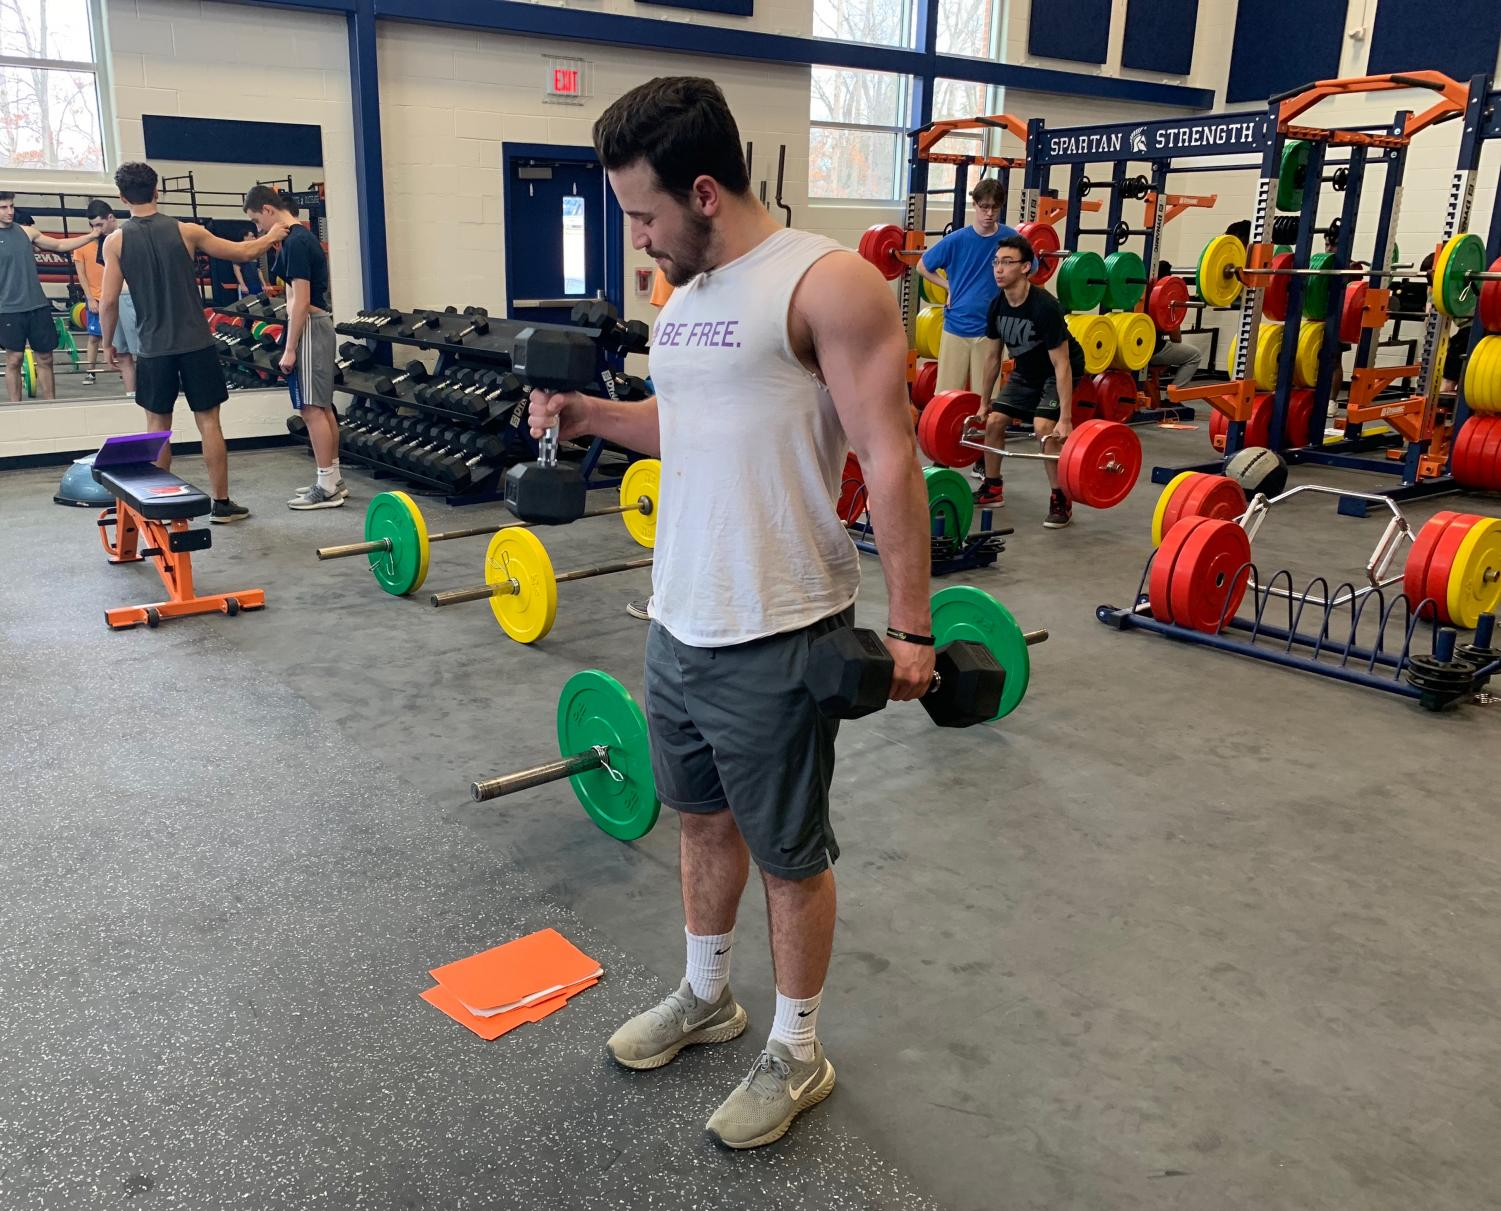 Senior Jeffery Beavers builds his upper body in his personal fitness class using the school's new dumbbells and equipment. Beavers has been part of the personal fitness program since sophomore year.